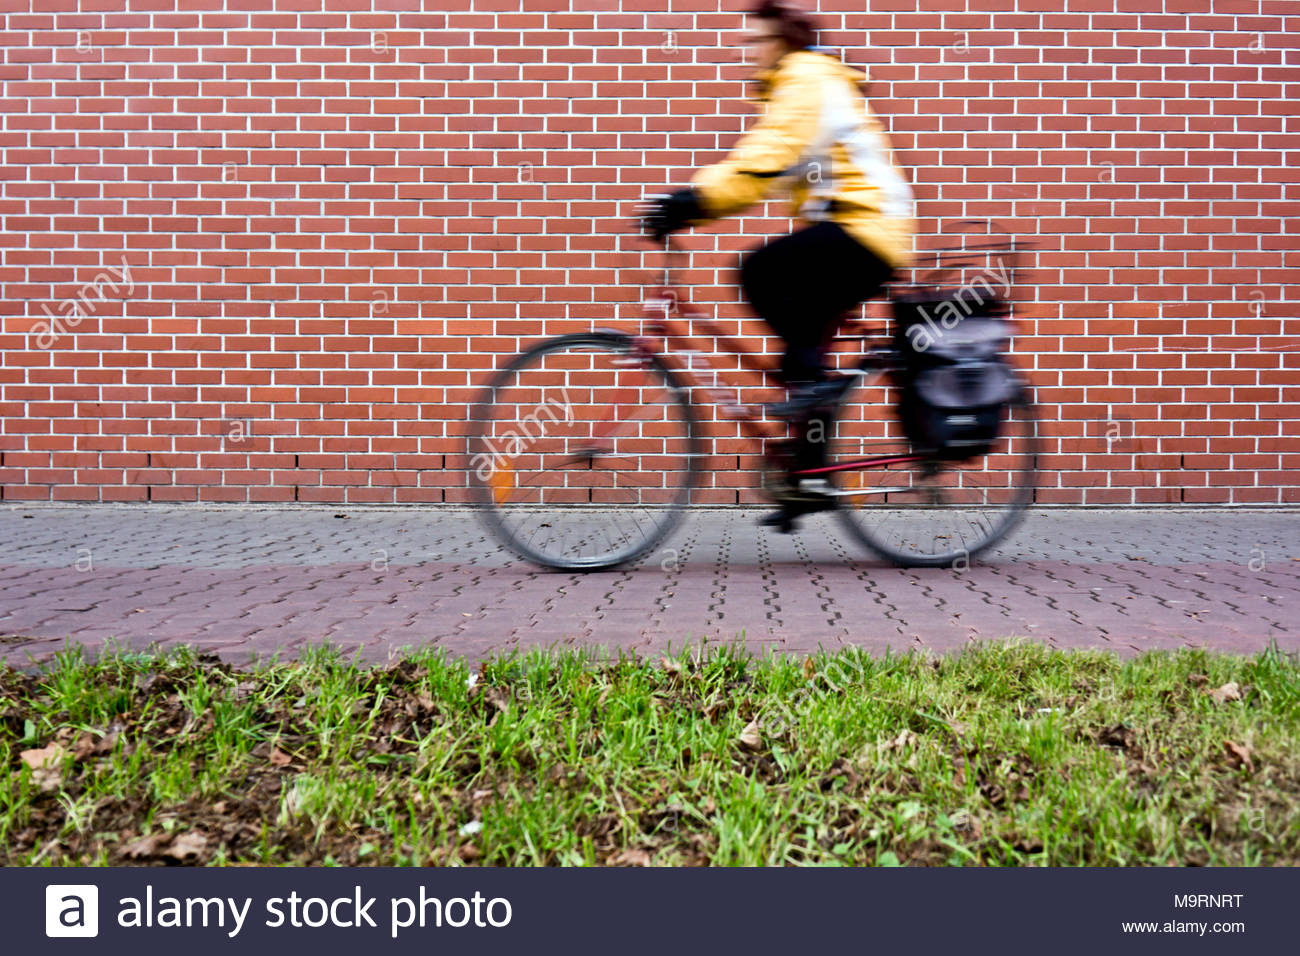 motion blur of a woman in yellow jacket riding on a bicycle in the city streets - Stock Image